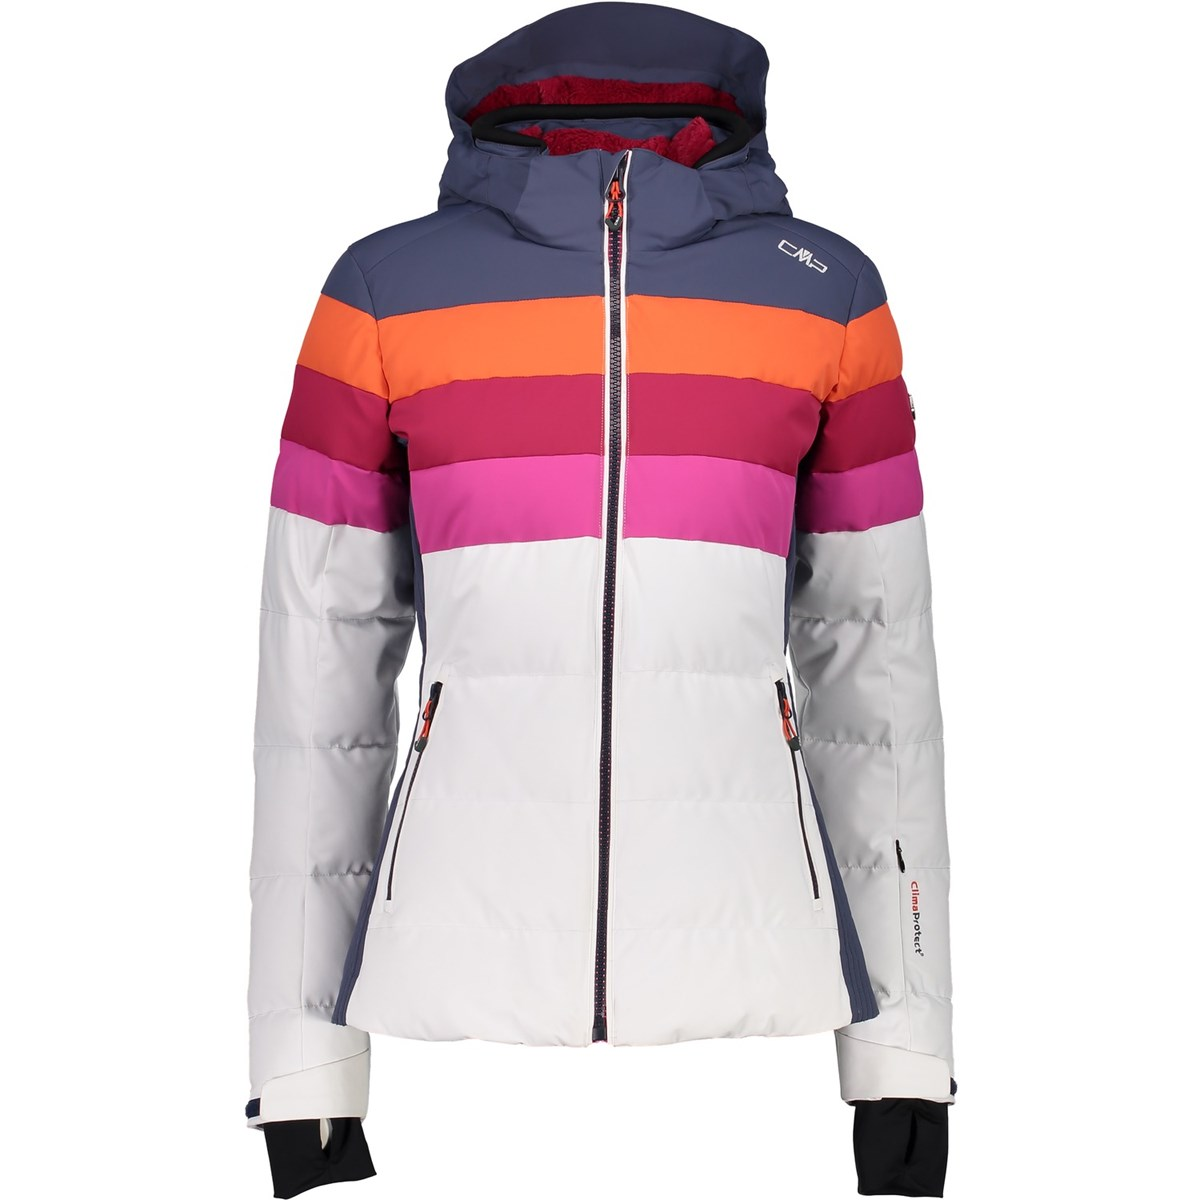 5804ce0ae8 CMP Cora Ladies Ski Jacket White. 0 (Be the first to add a review!)